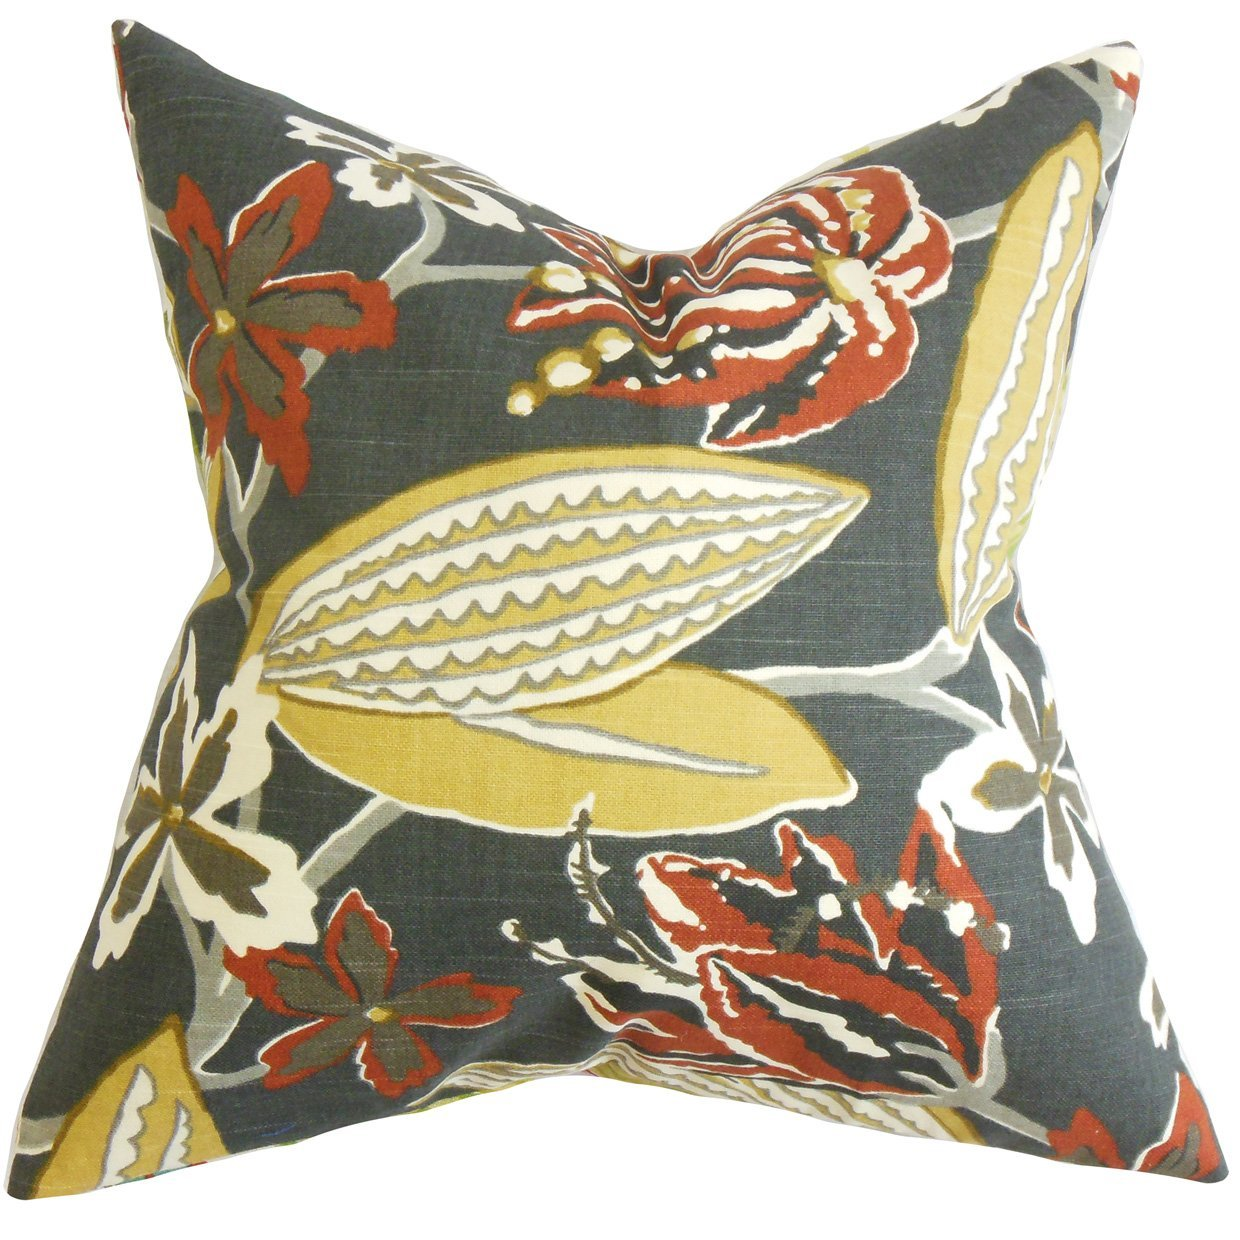 The Pillow Collection Averill Floral Bedding Sham Red King//20 x 36